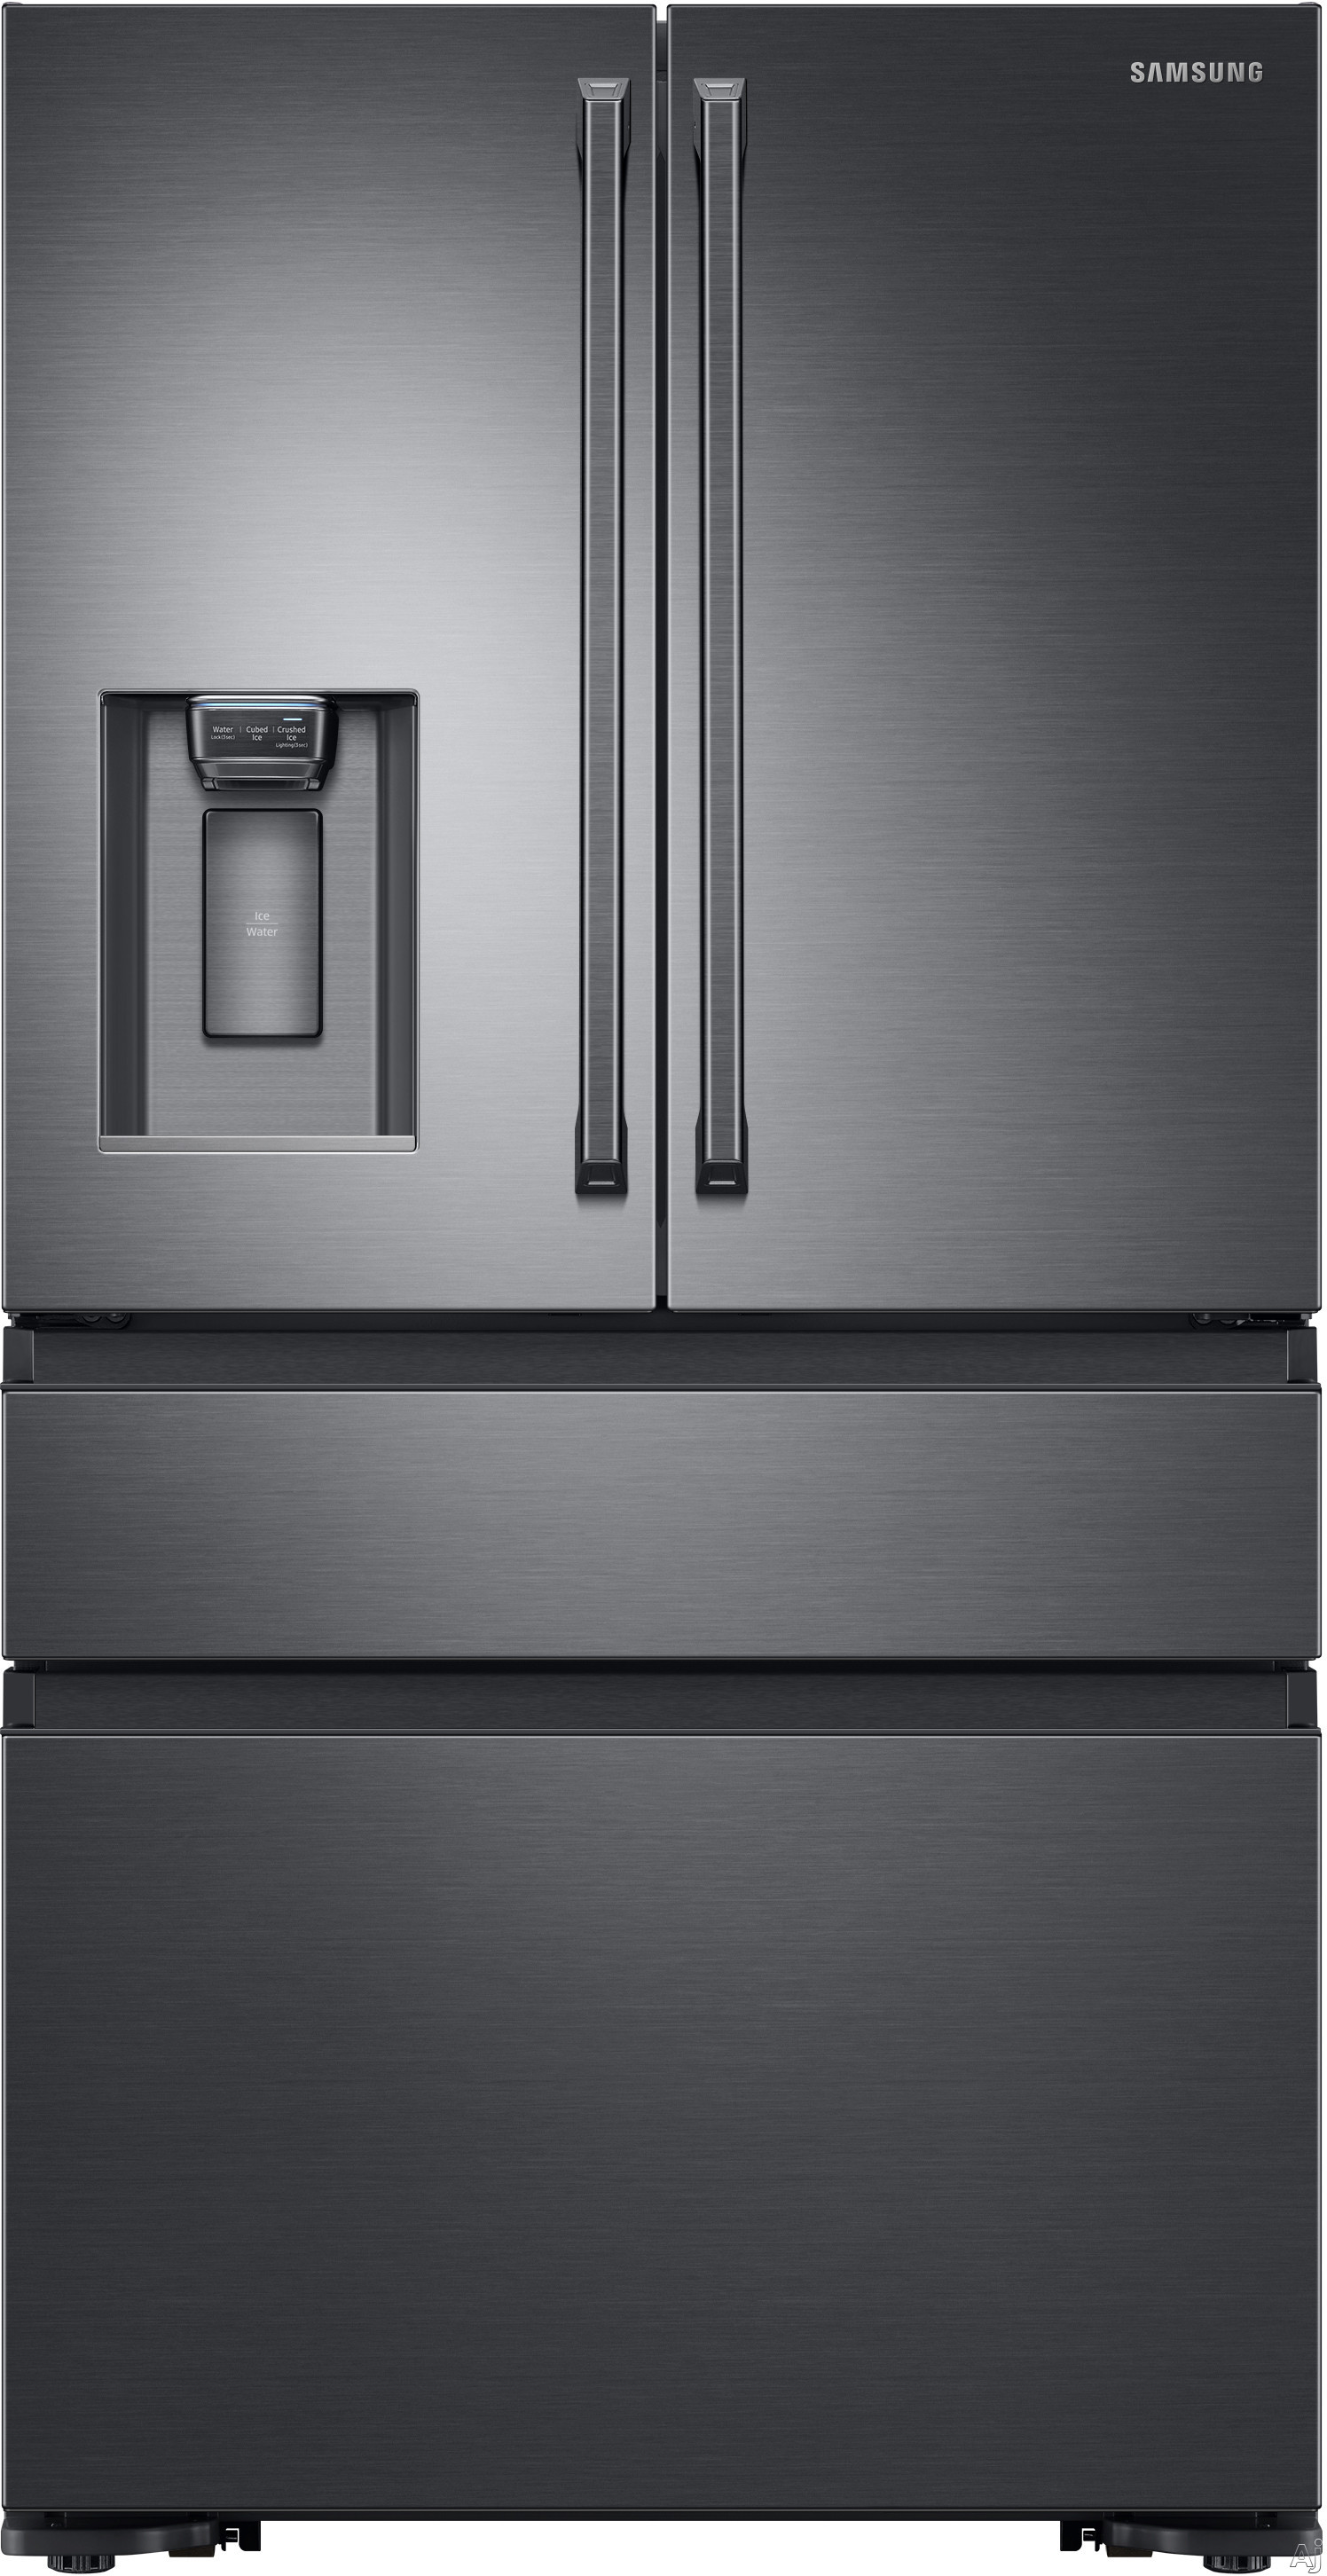 Samsung RF23M8090S 36 Inch Counter Depth 4-Door French Door Refrigerator with Metal Cooling FlexZone™ Drawer, Twin Cooling Plus®, Wi-Fi Ready, Auto Water Fill, Tempered Glass Shelves, Polygon Handle, ENERGY STAR®, Star-K Certified, and 22.7 cu. ft. Ca